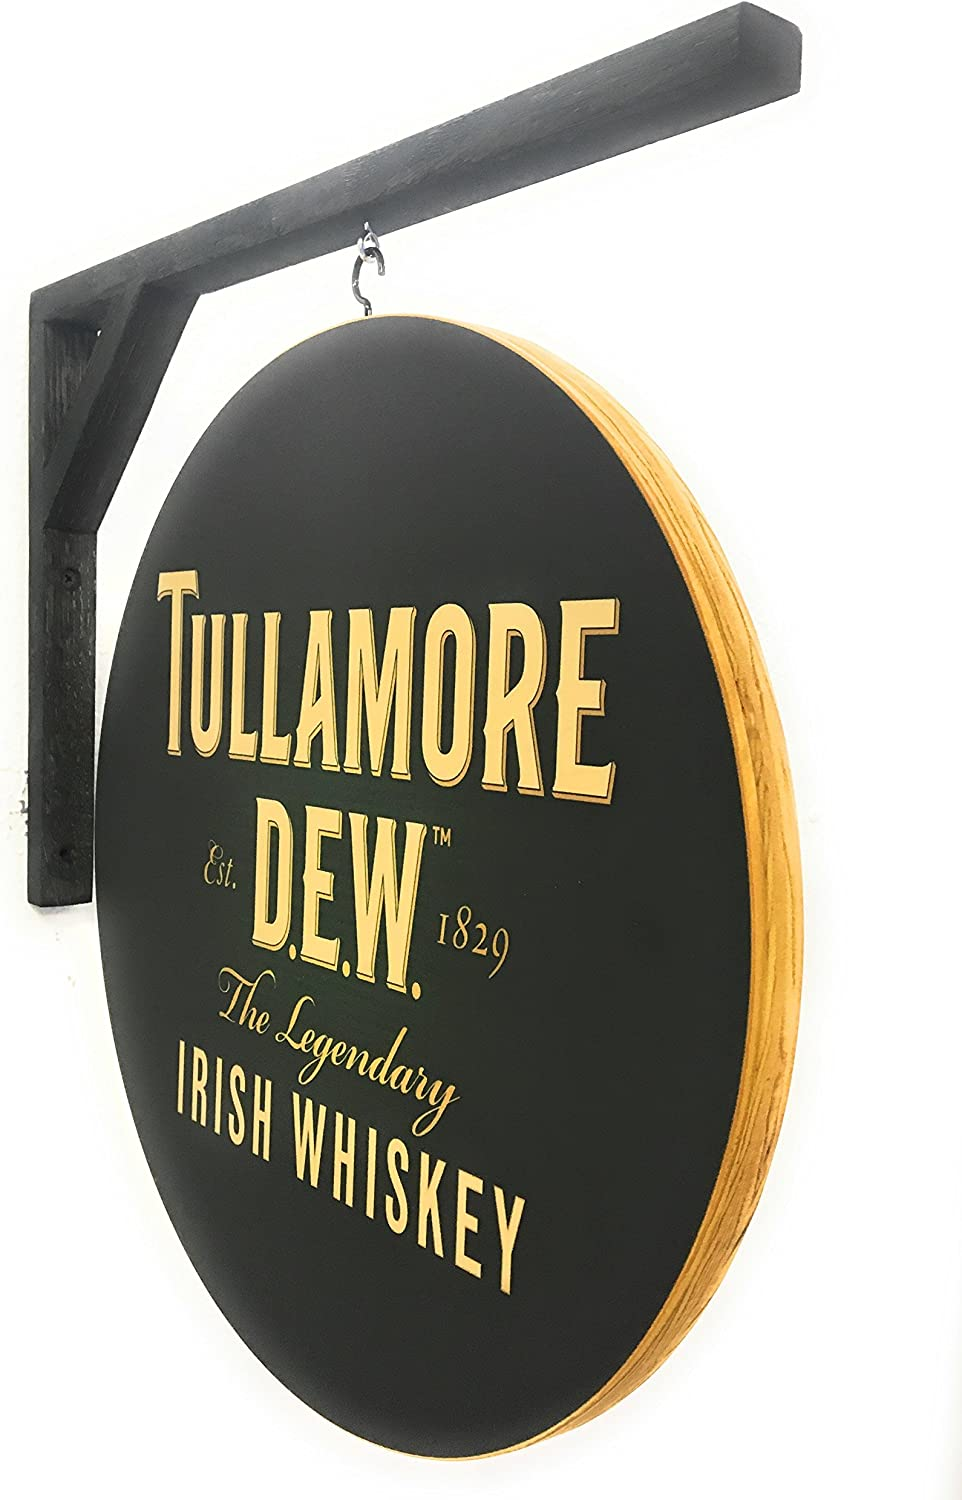 Tullamore Dew Super intense New product! New type SALE Irish Whiskey Sign - Sided 15